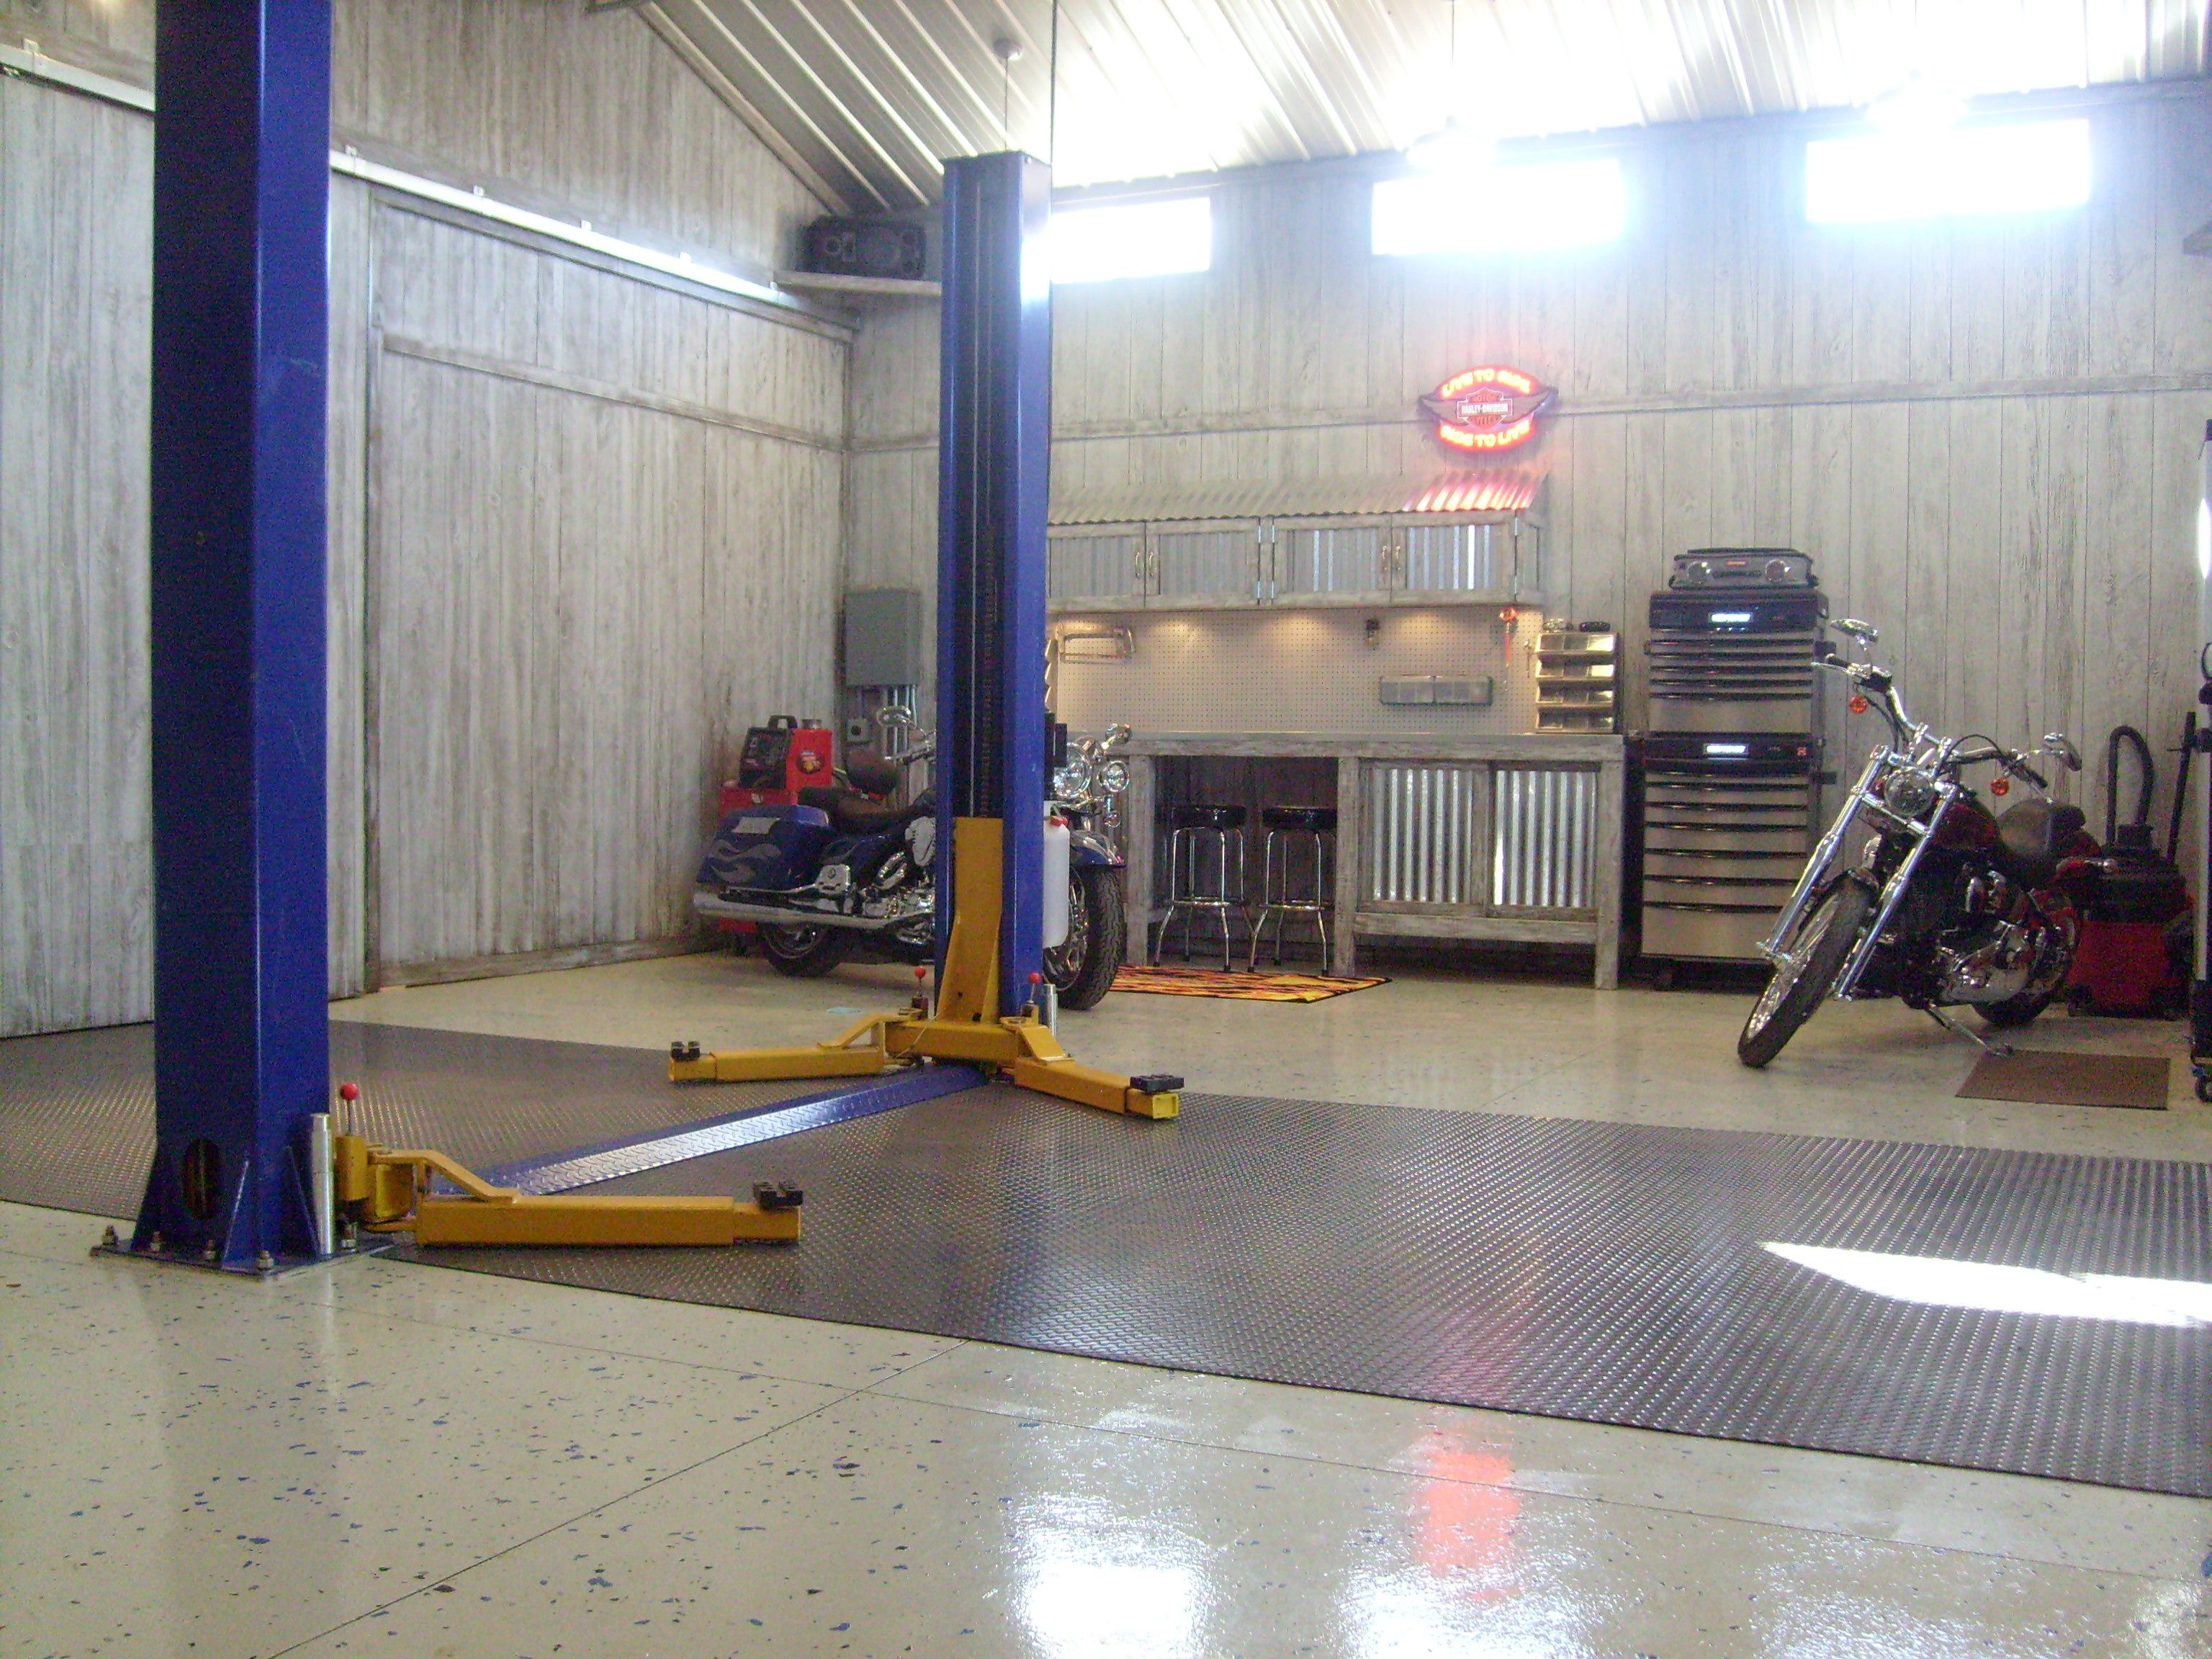 Auto Repair Garage Floor Plans: While We Used Our Vehicle In Daily Life So It Needs